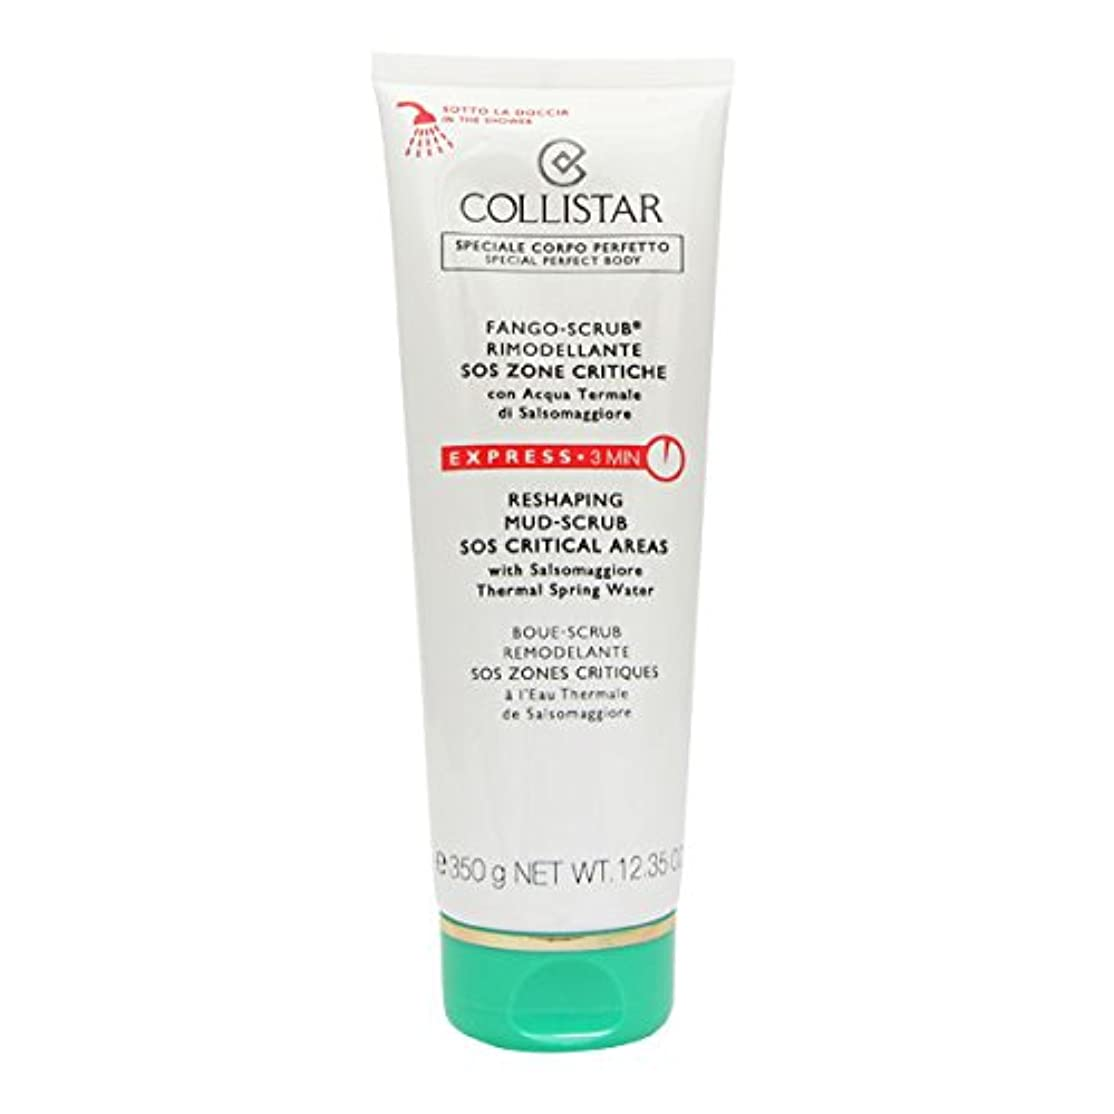 絶望損傷プレビスサイトCollistar Reshaping Mud-scrub Sos Critical Areas 350g [並行輸入品]